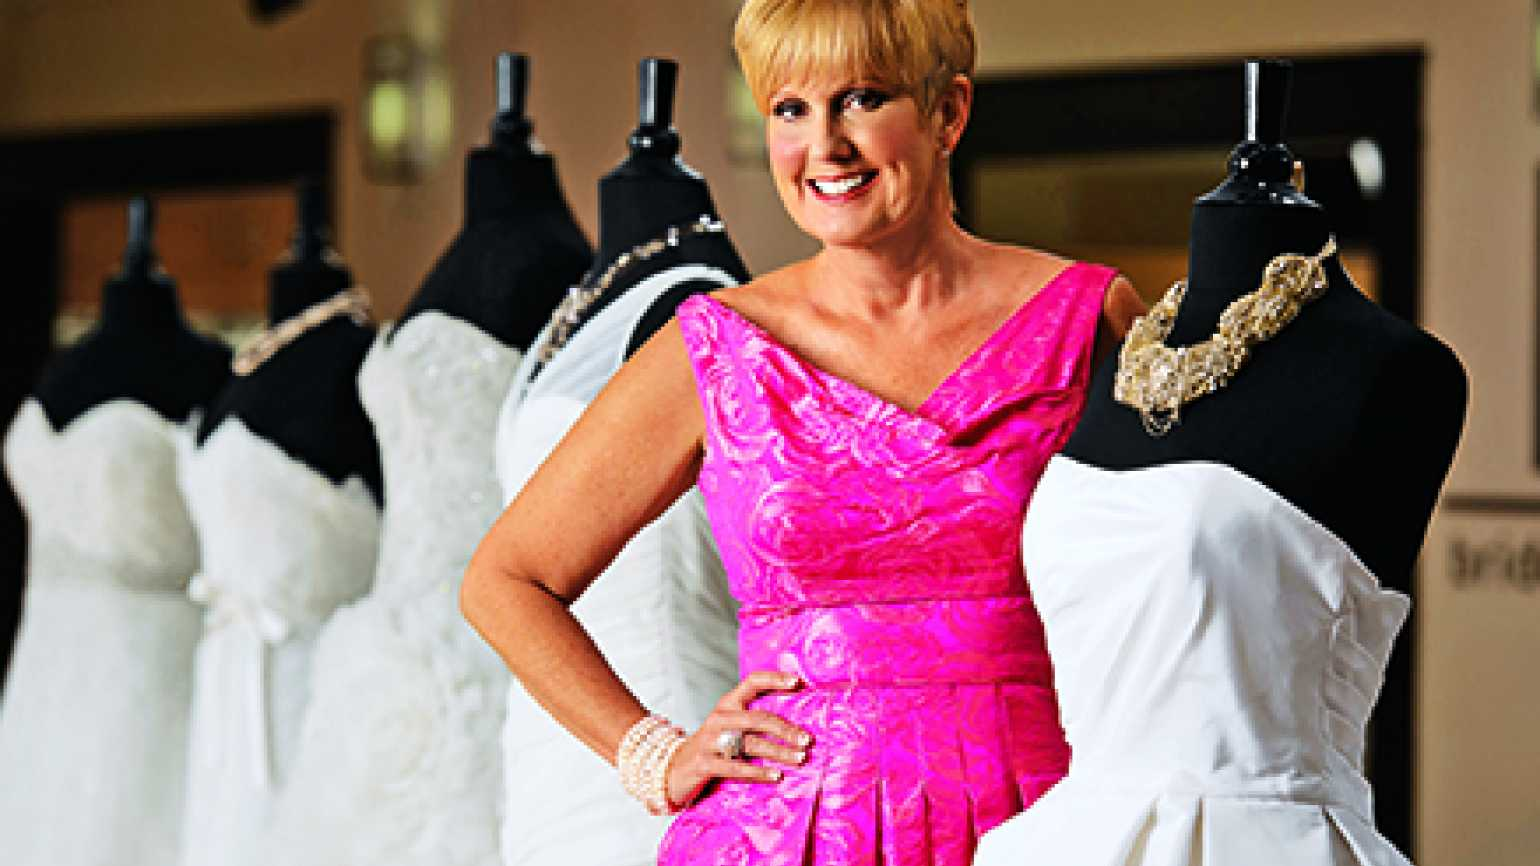 d35c3a0bae10 Y'all might know me from TLC's Say Yes to the Dress: Atlanta, the show  where I help brides find their dream wedding dresses at my store, Bridals  by Lori.